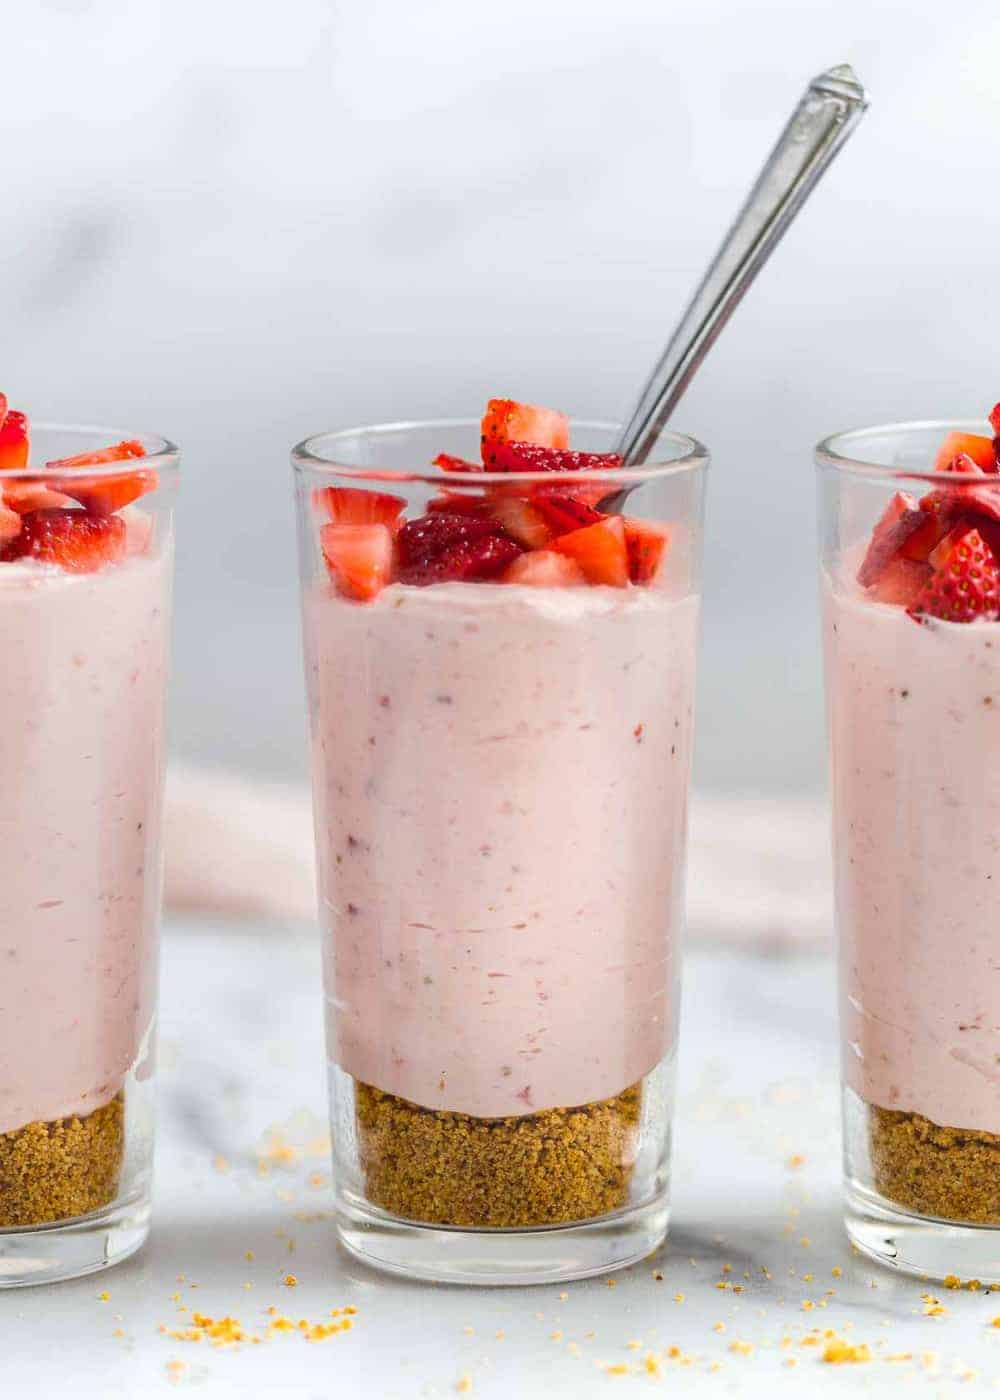 Easy Strawberry Cheesecake Mousse I Heart Naptime